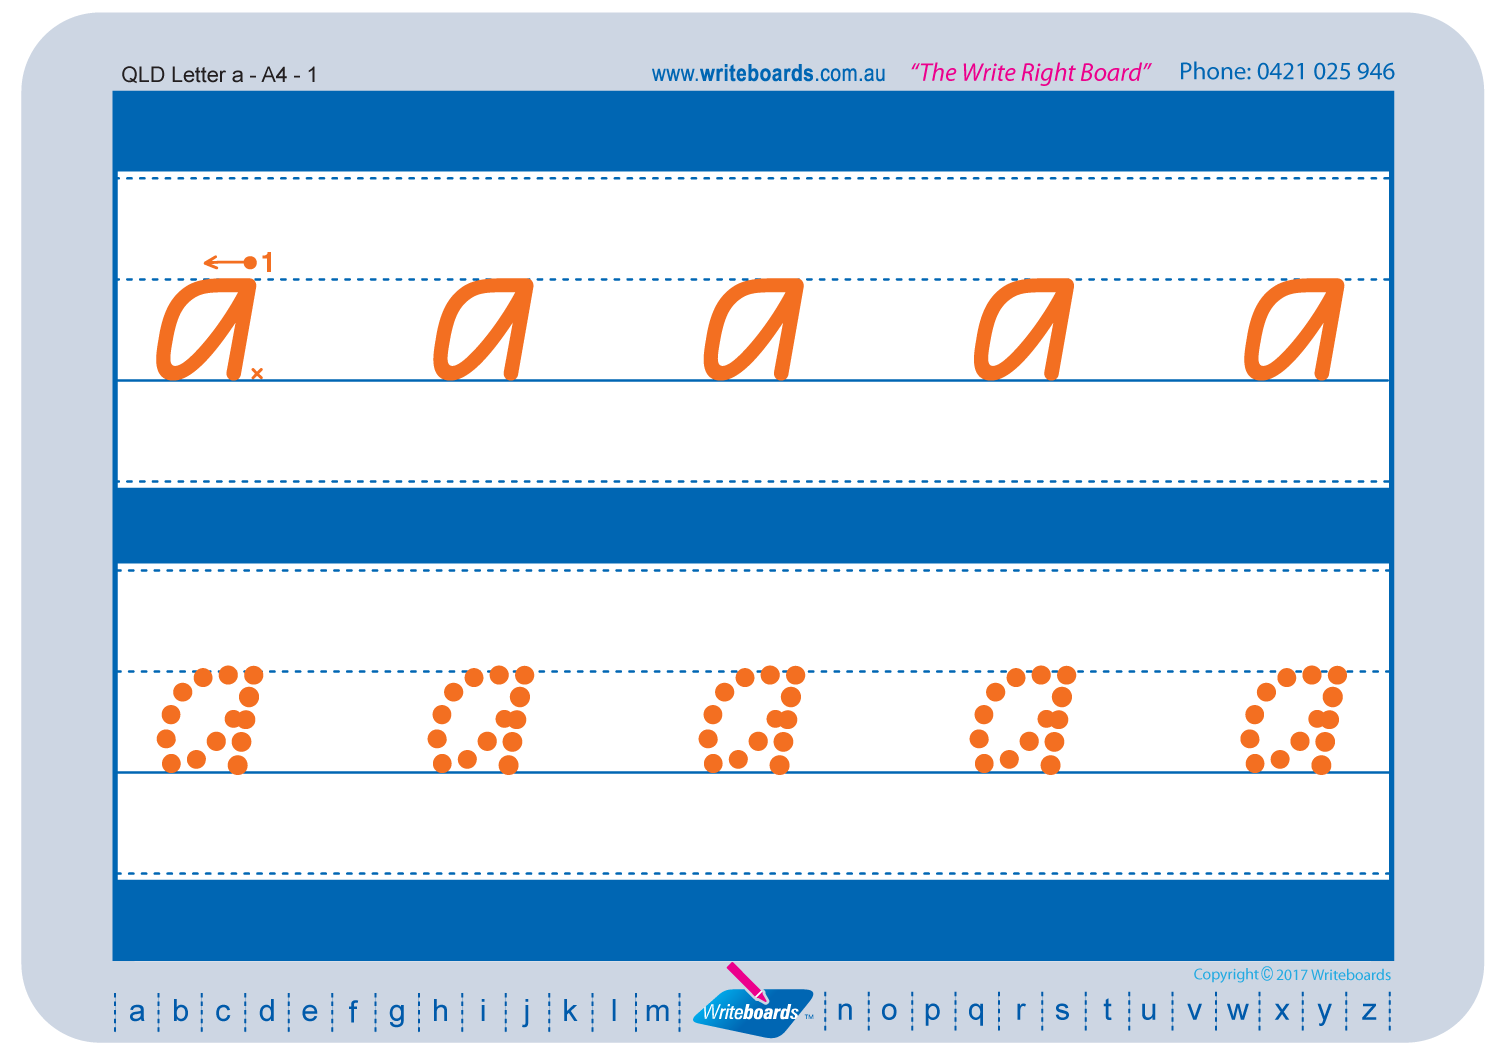 Worksheet Pack A - QLD Modern Cursive Font | Writeboards ...